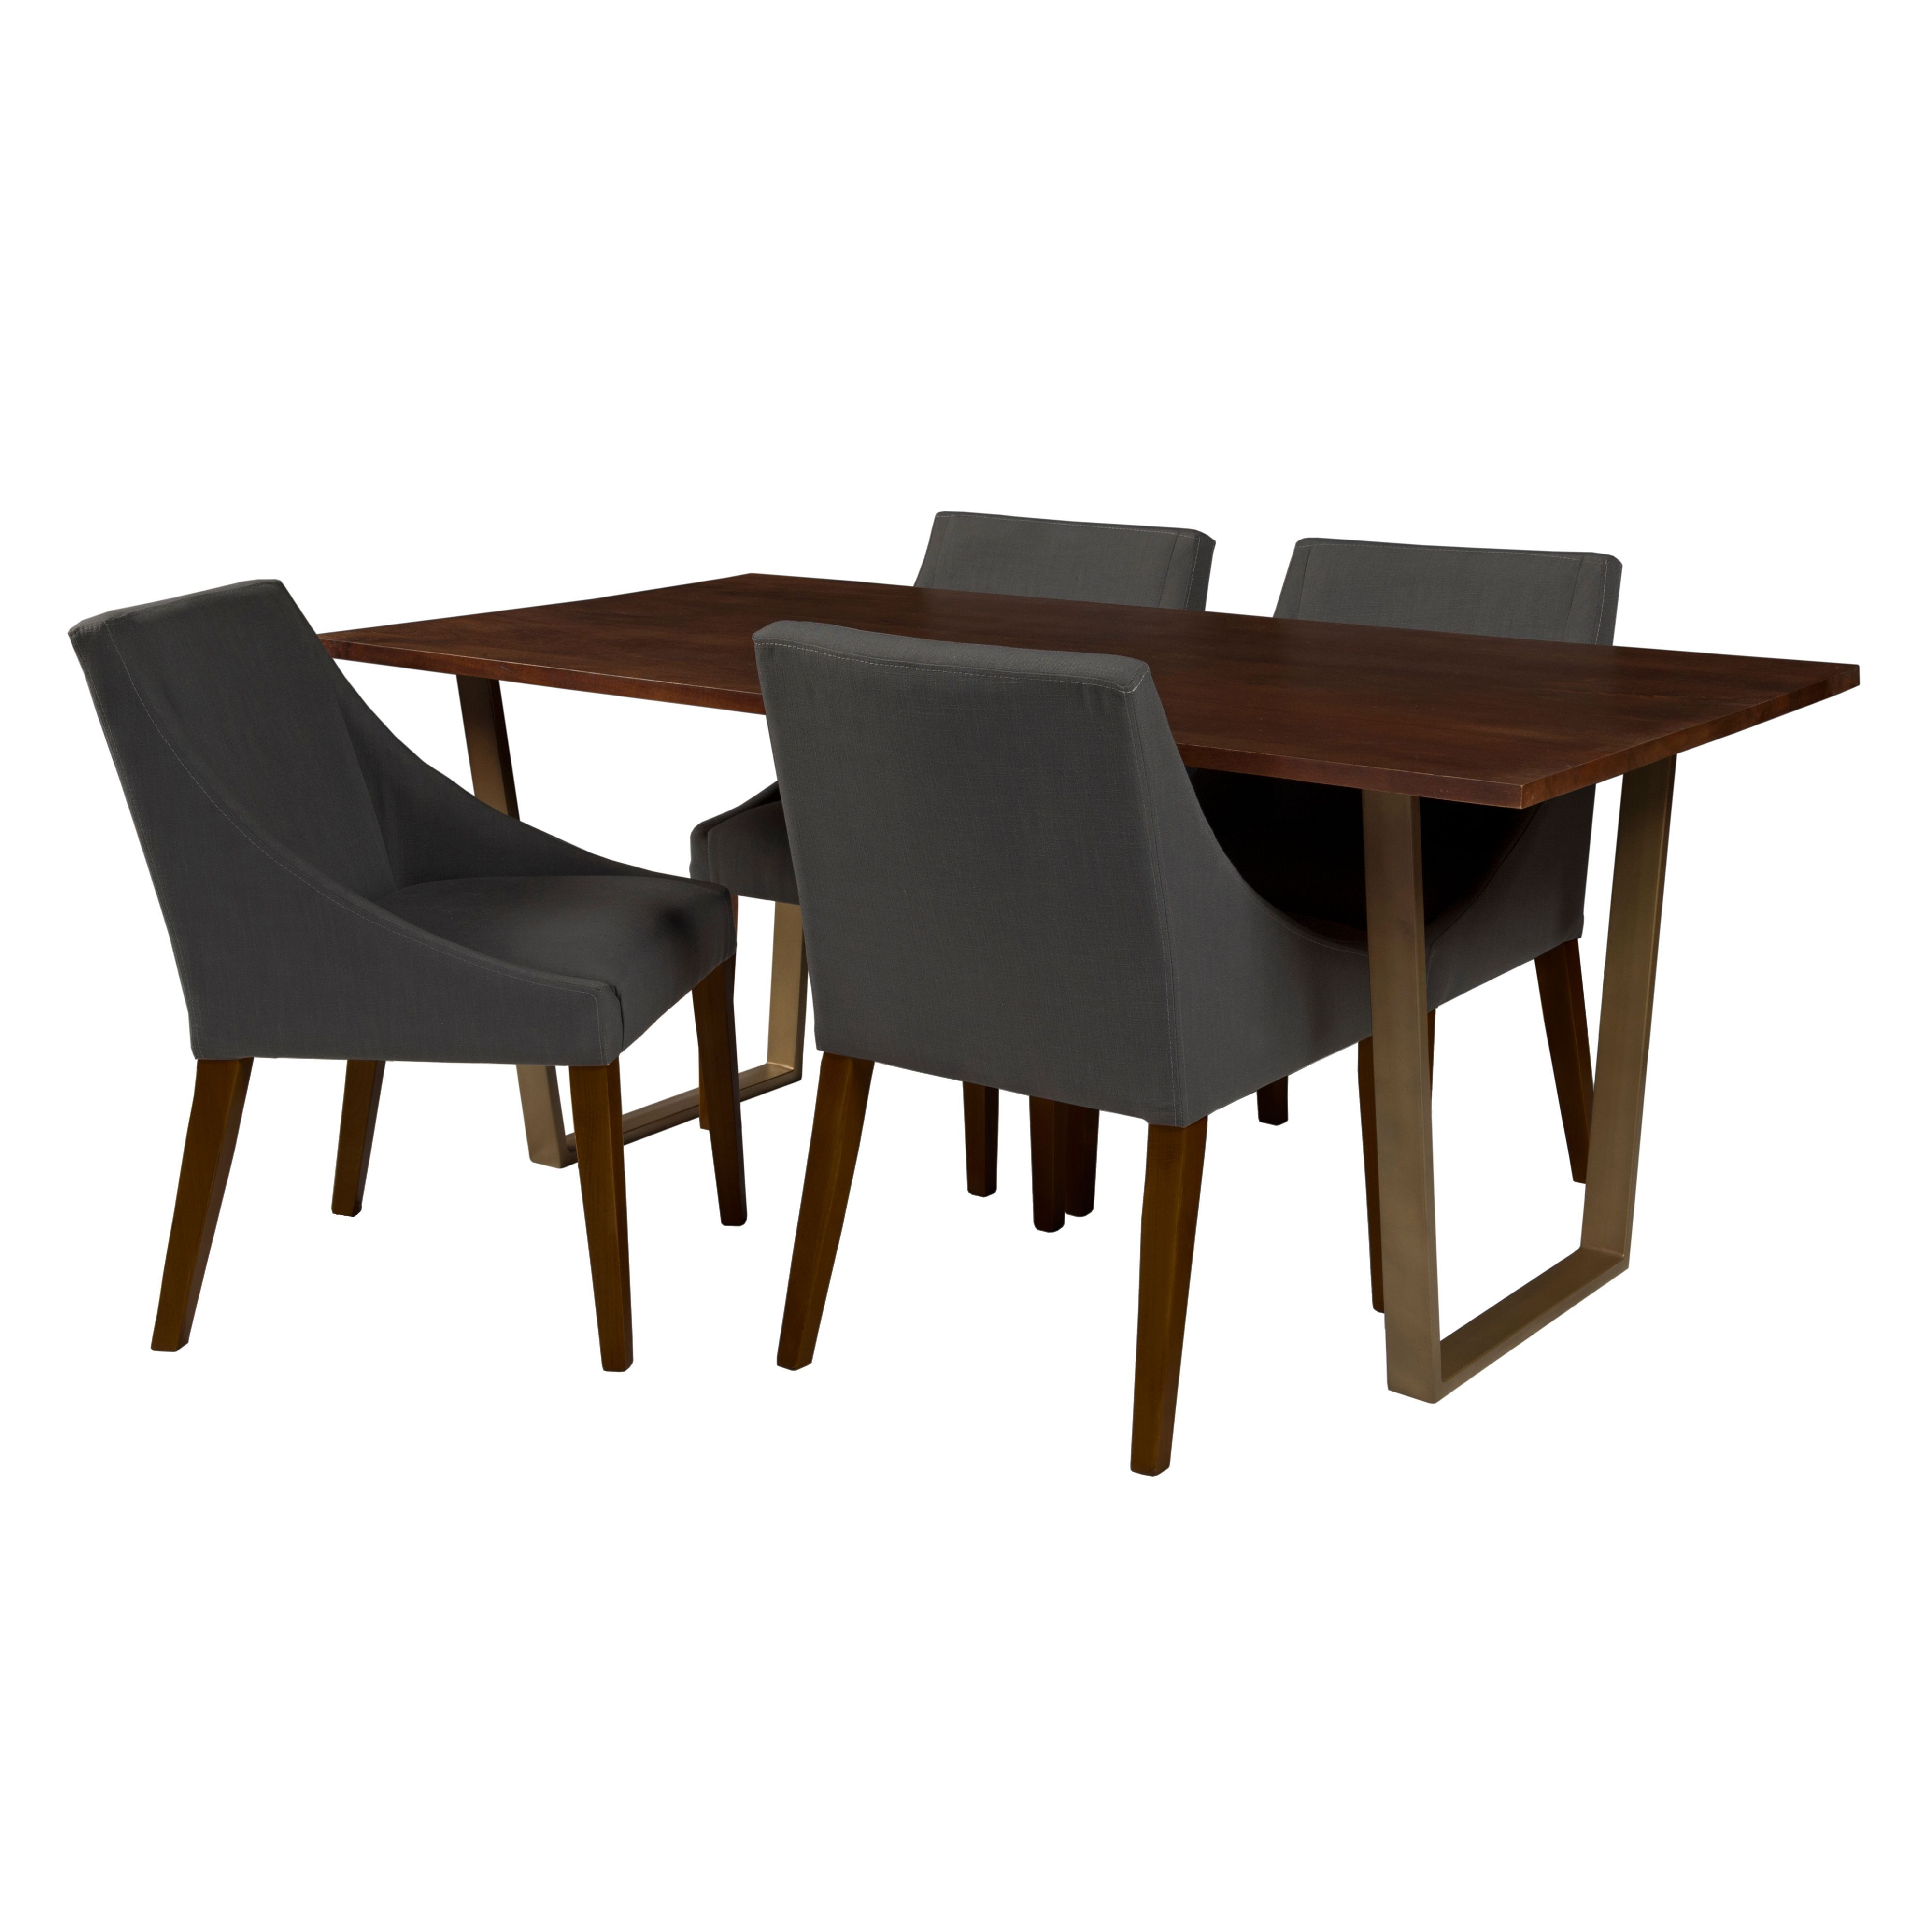 Living By Christiane Lemieux Cleo Dining Furniture Range   House Of Fraser